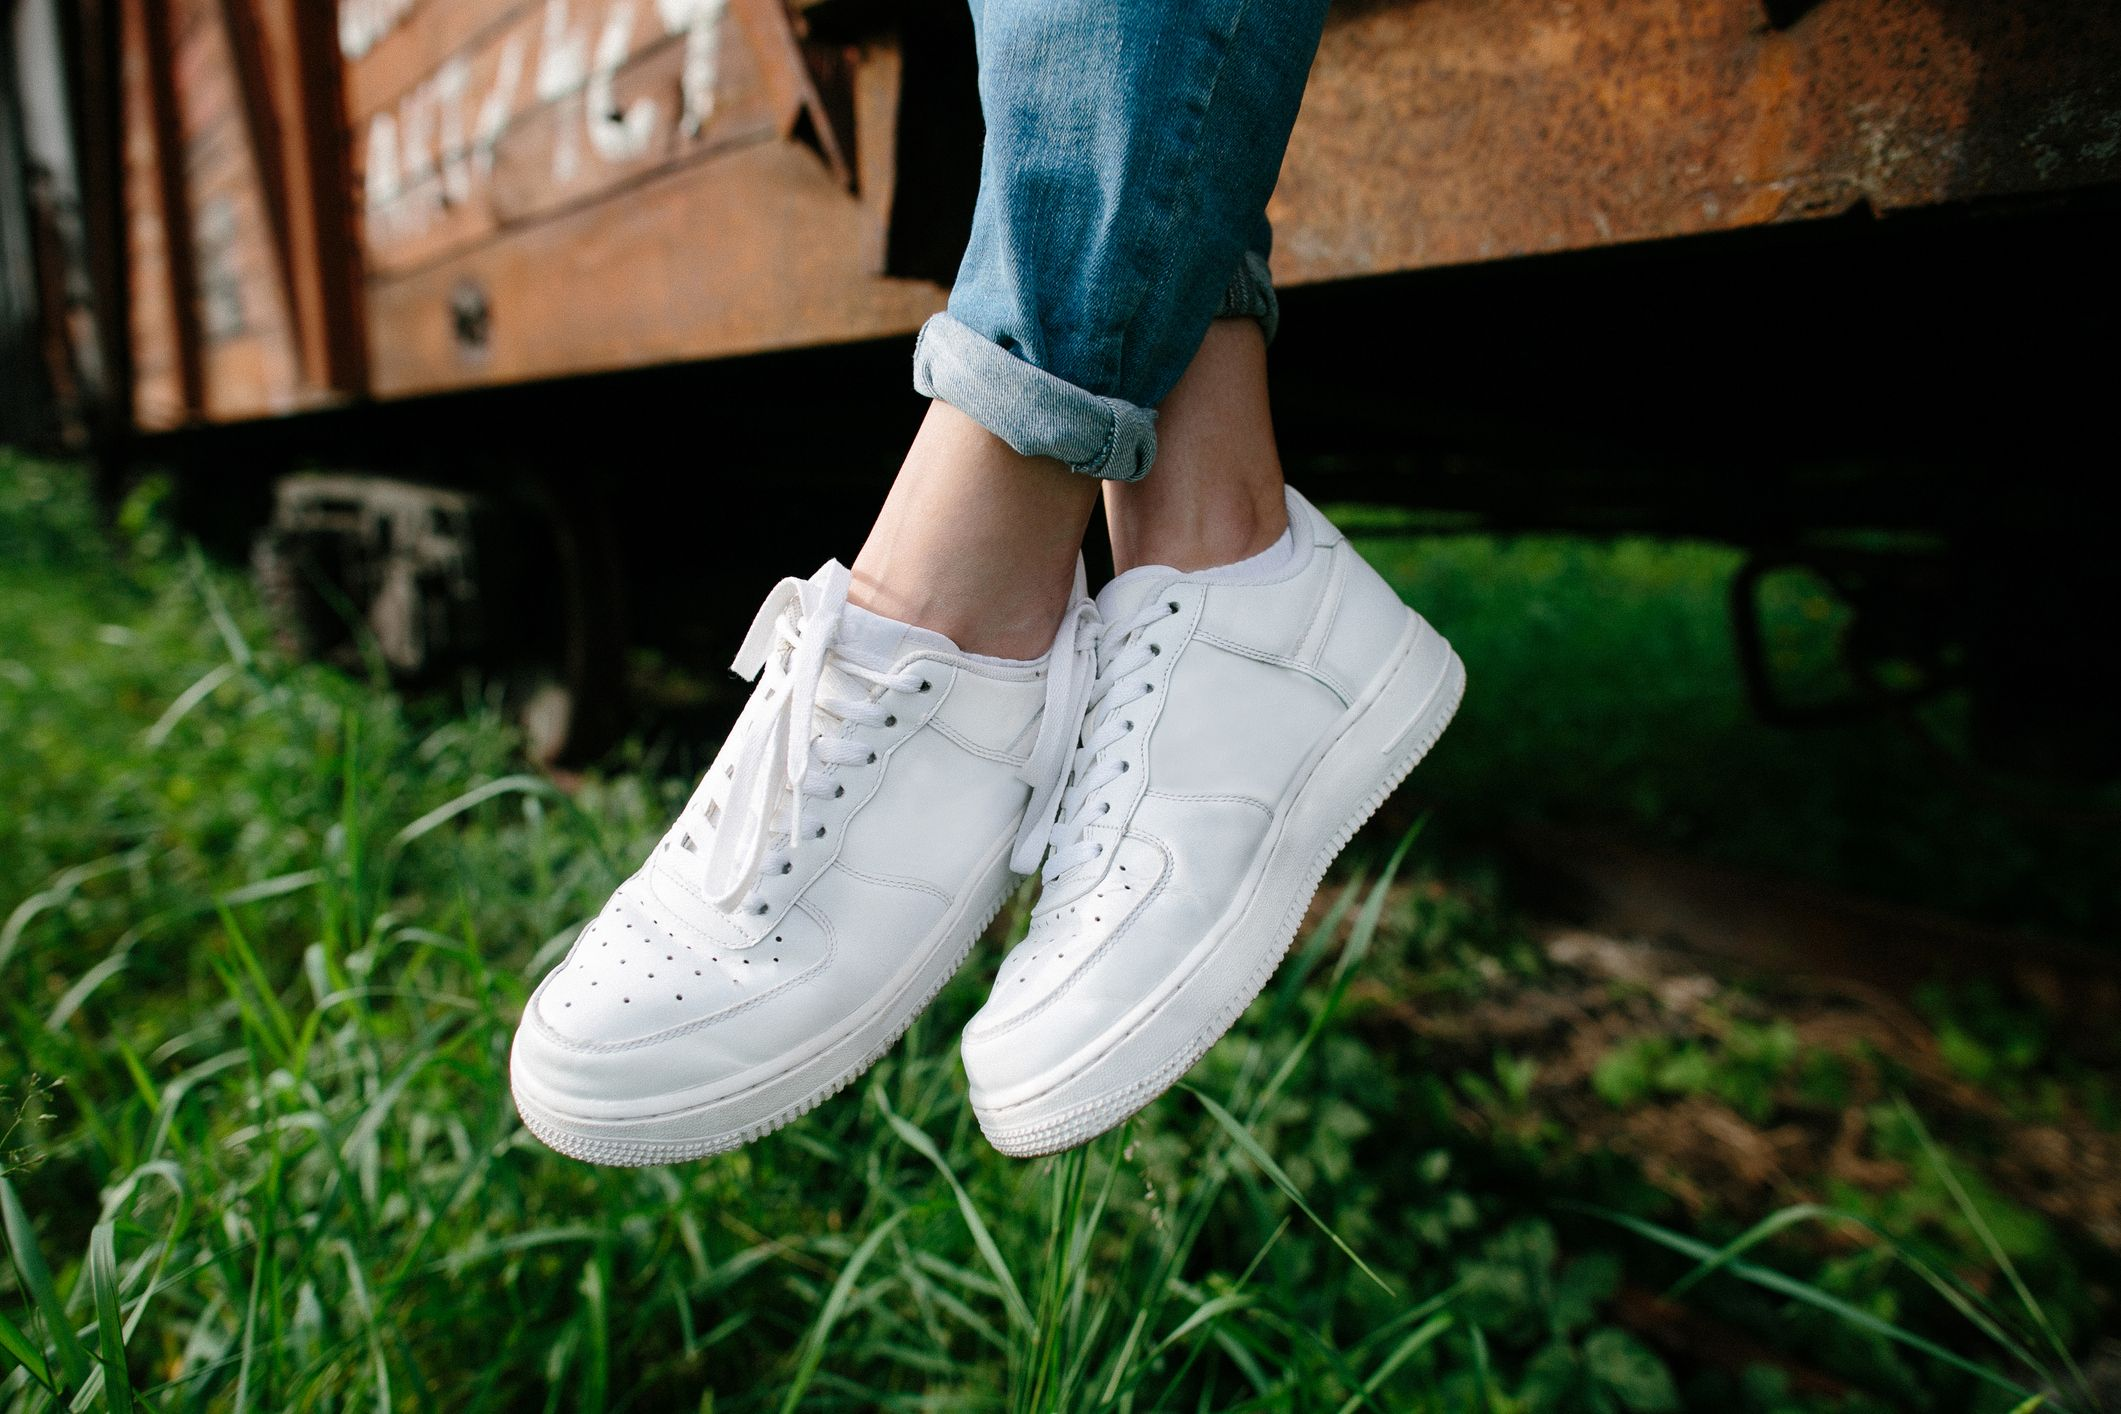 69d4cc0b82ebc How to Clean White Shoes - Best Way to Clean White Converse or ...